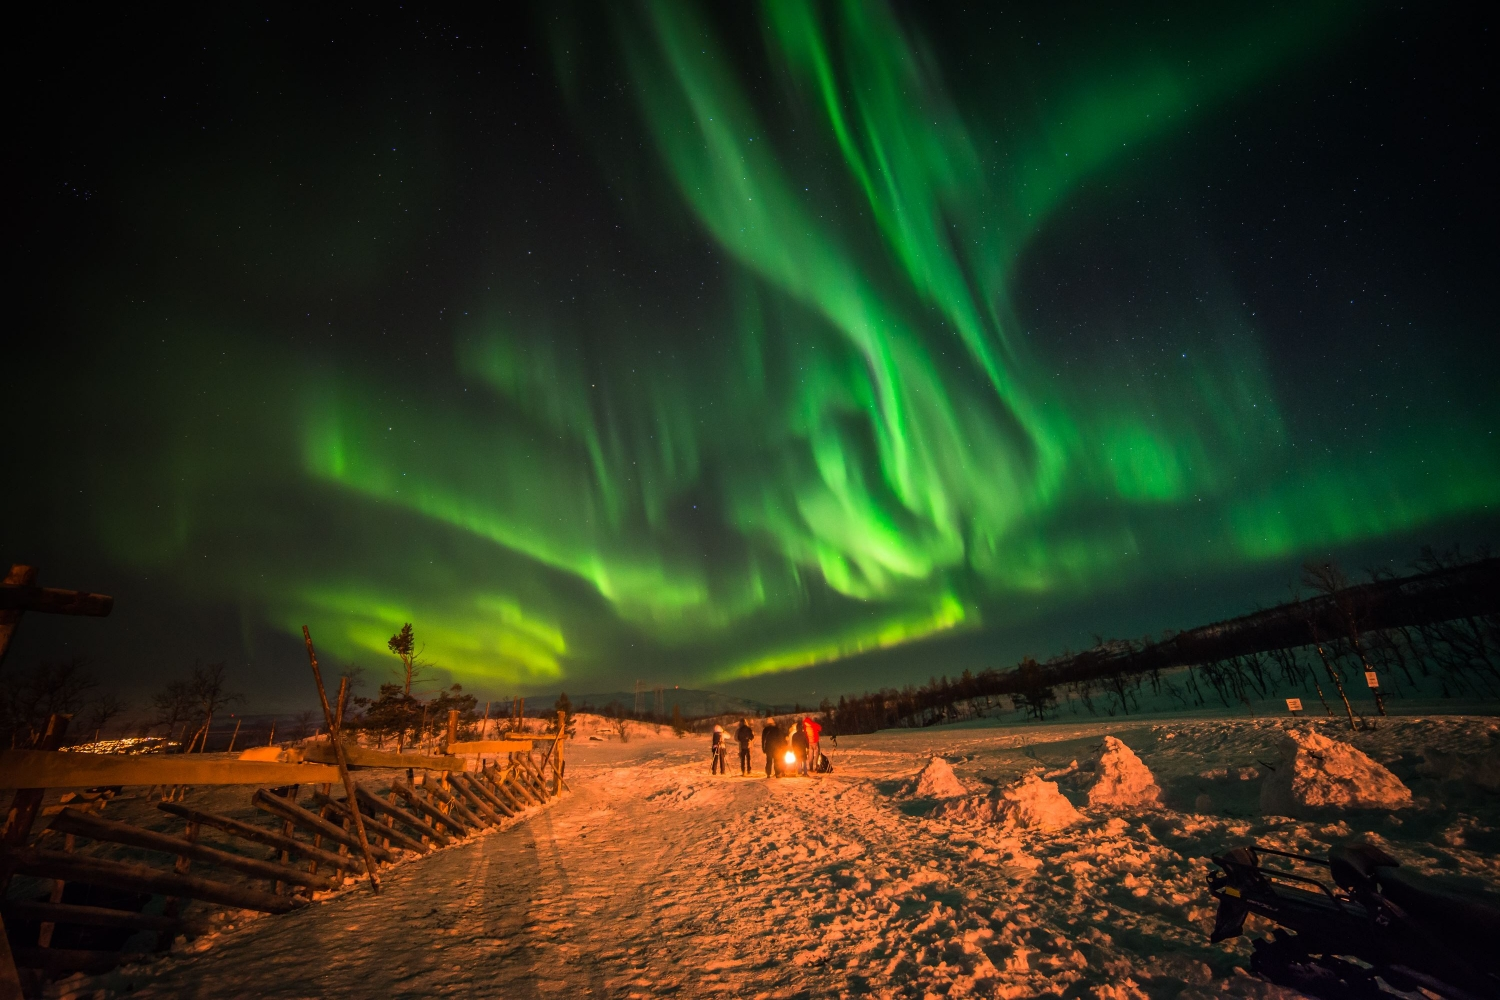 Northern Lights above snowy landscape